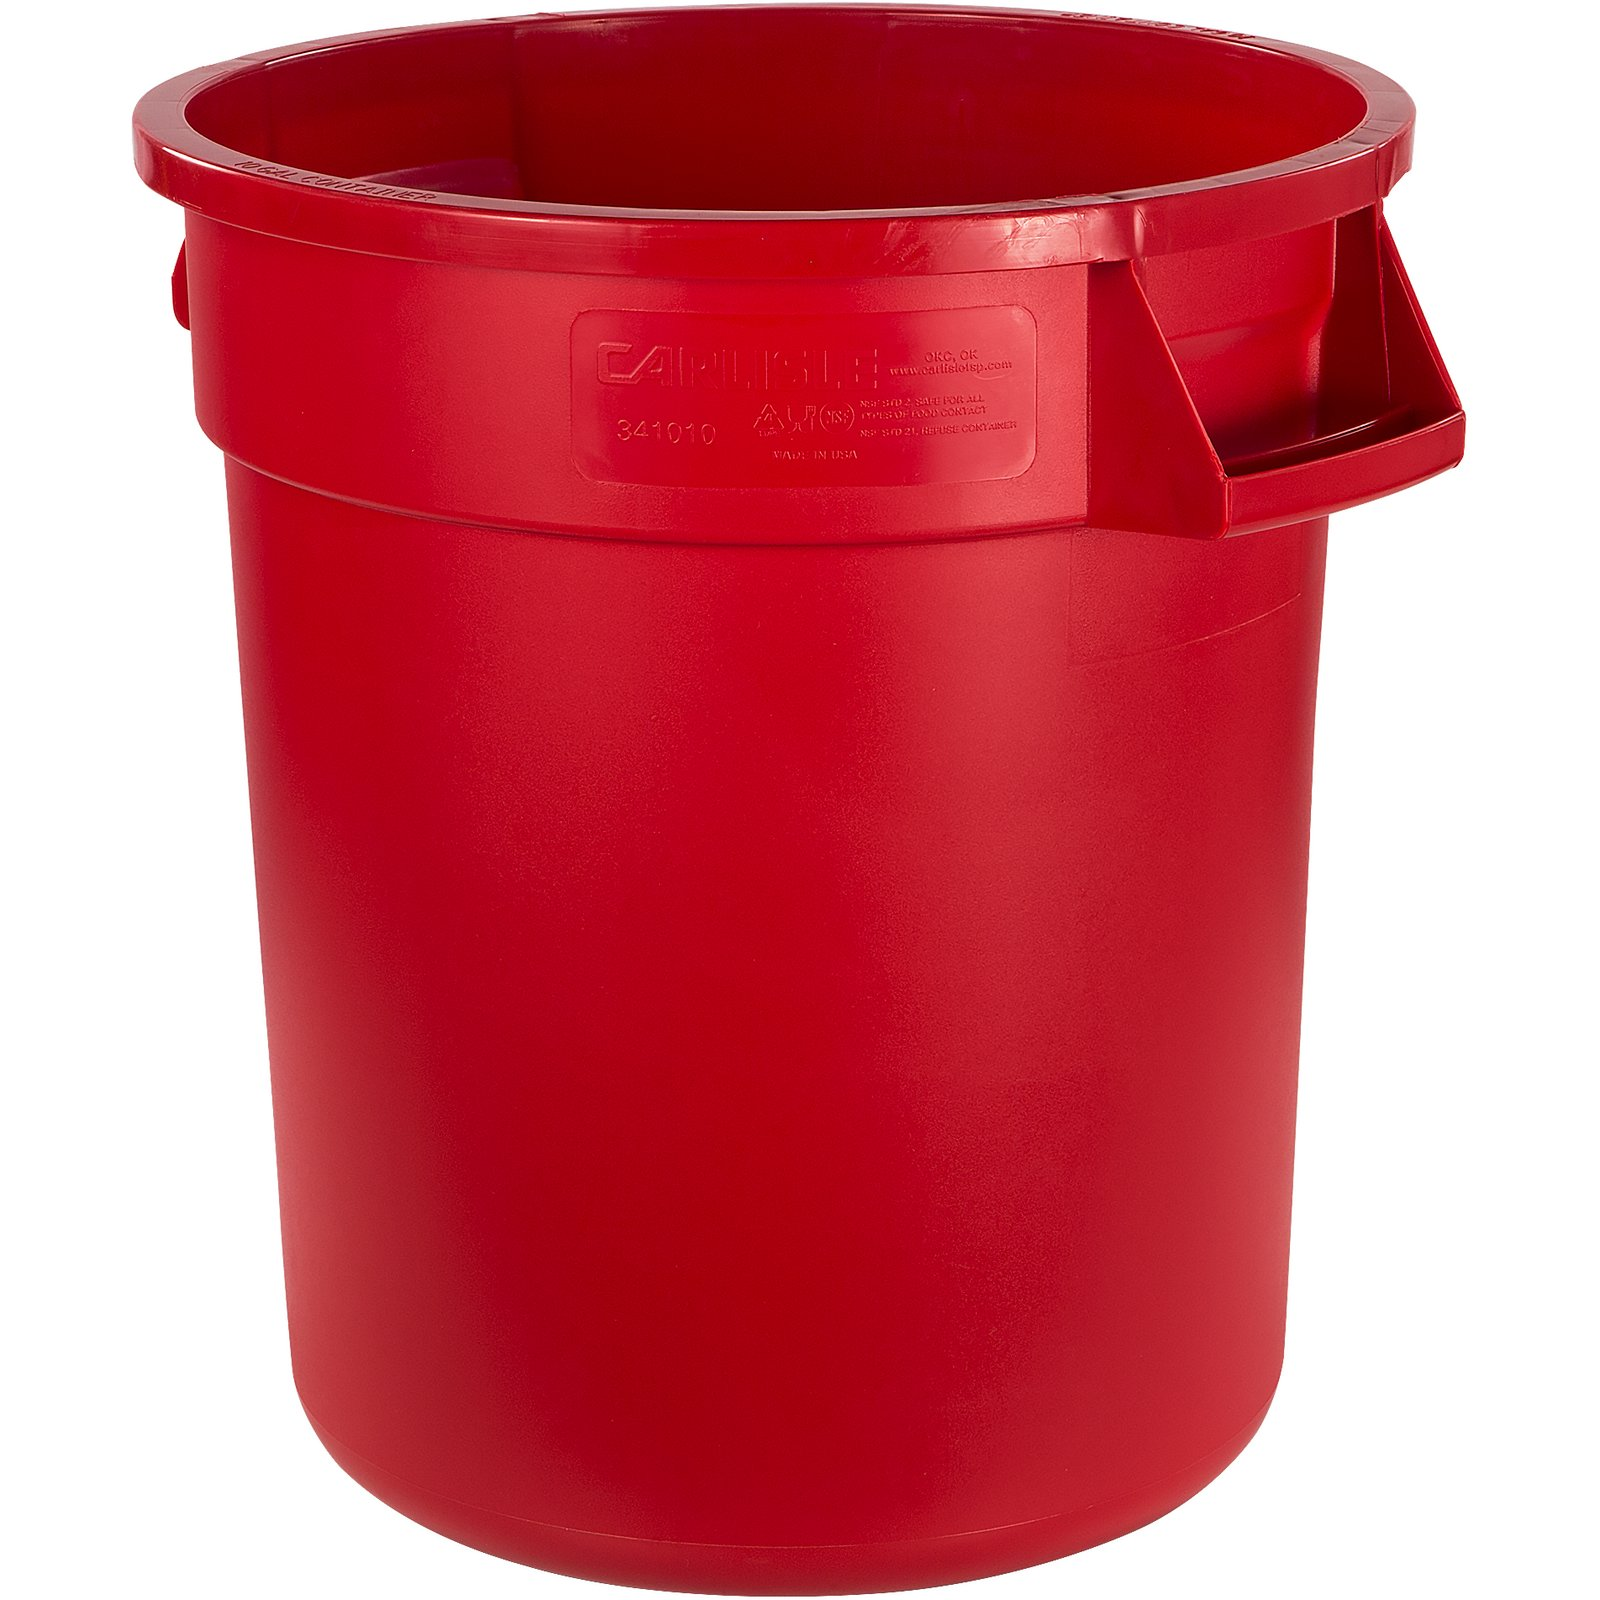 34101005 Bronco Round Waste Bin Food Container 10 Gallon Red